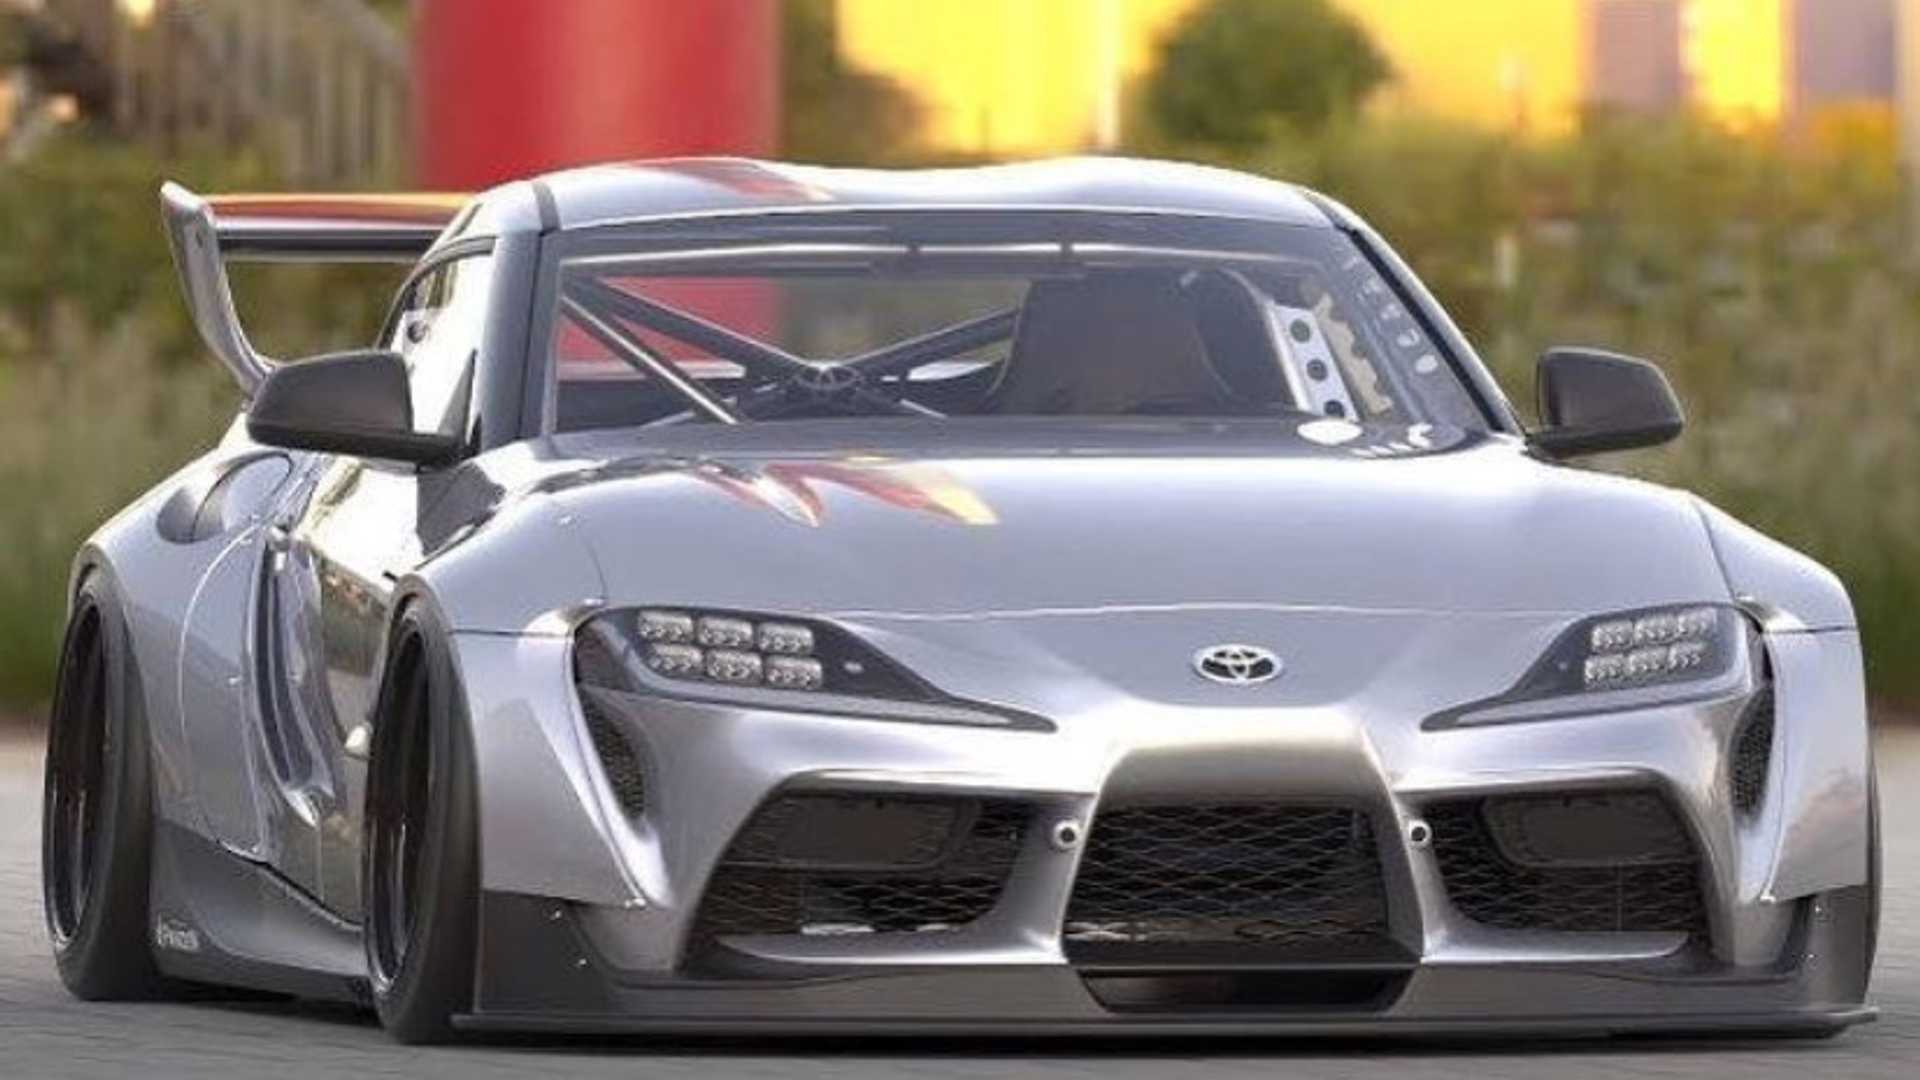 New Toyota Supra Getting Outrageous Widebody Kit